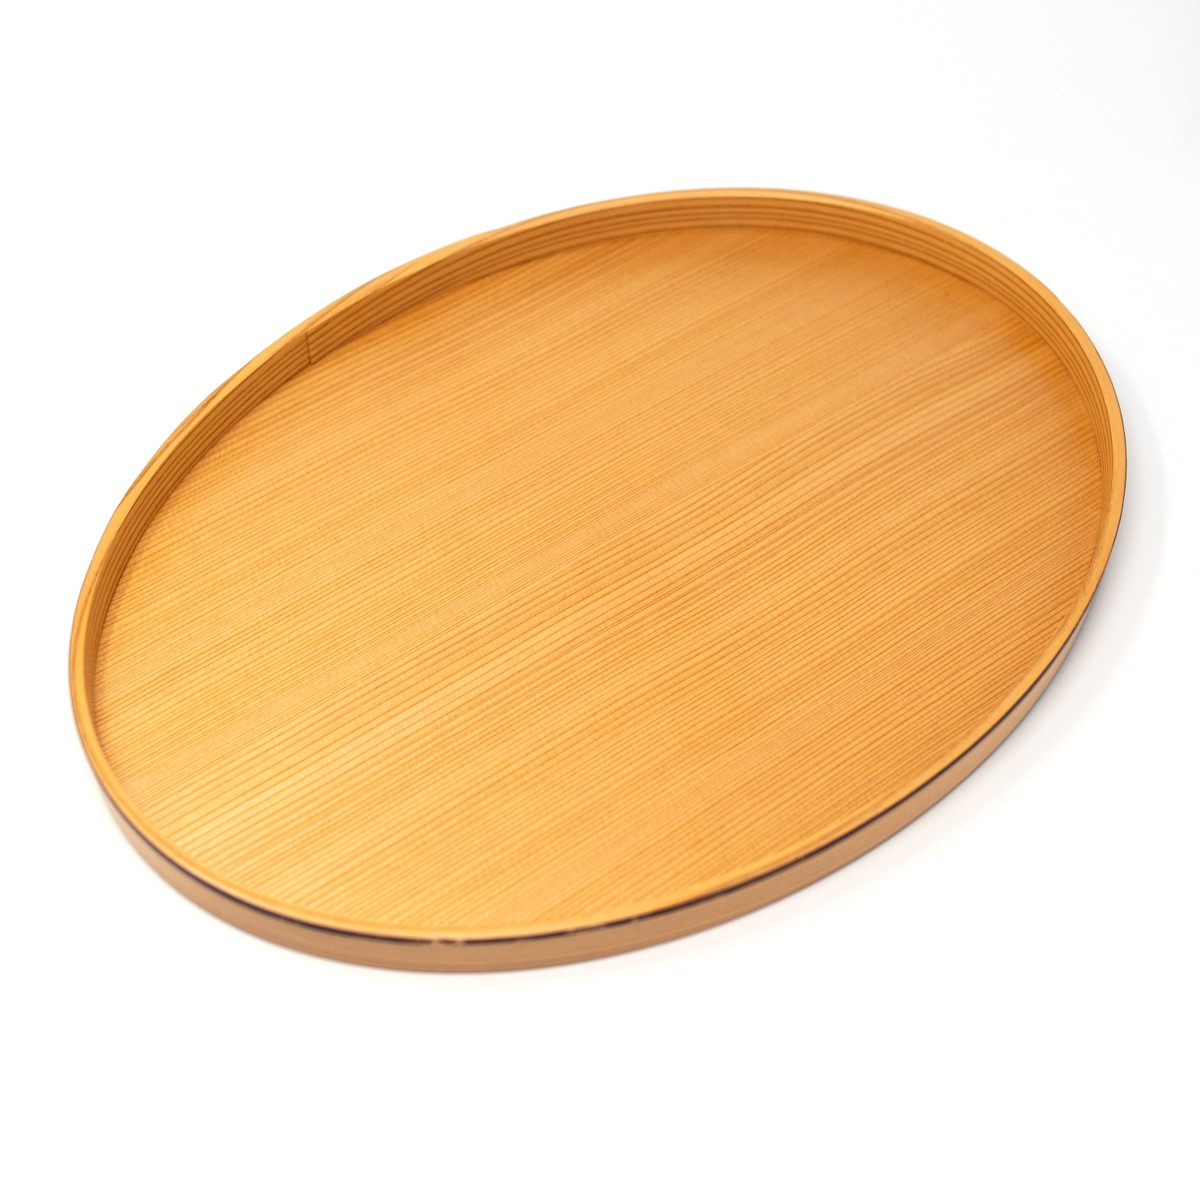 Photo of Magewappa Sugi Serving Tray